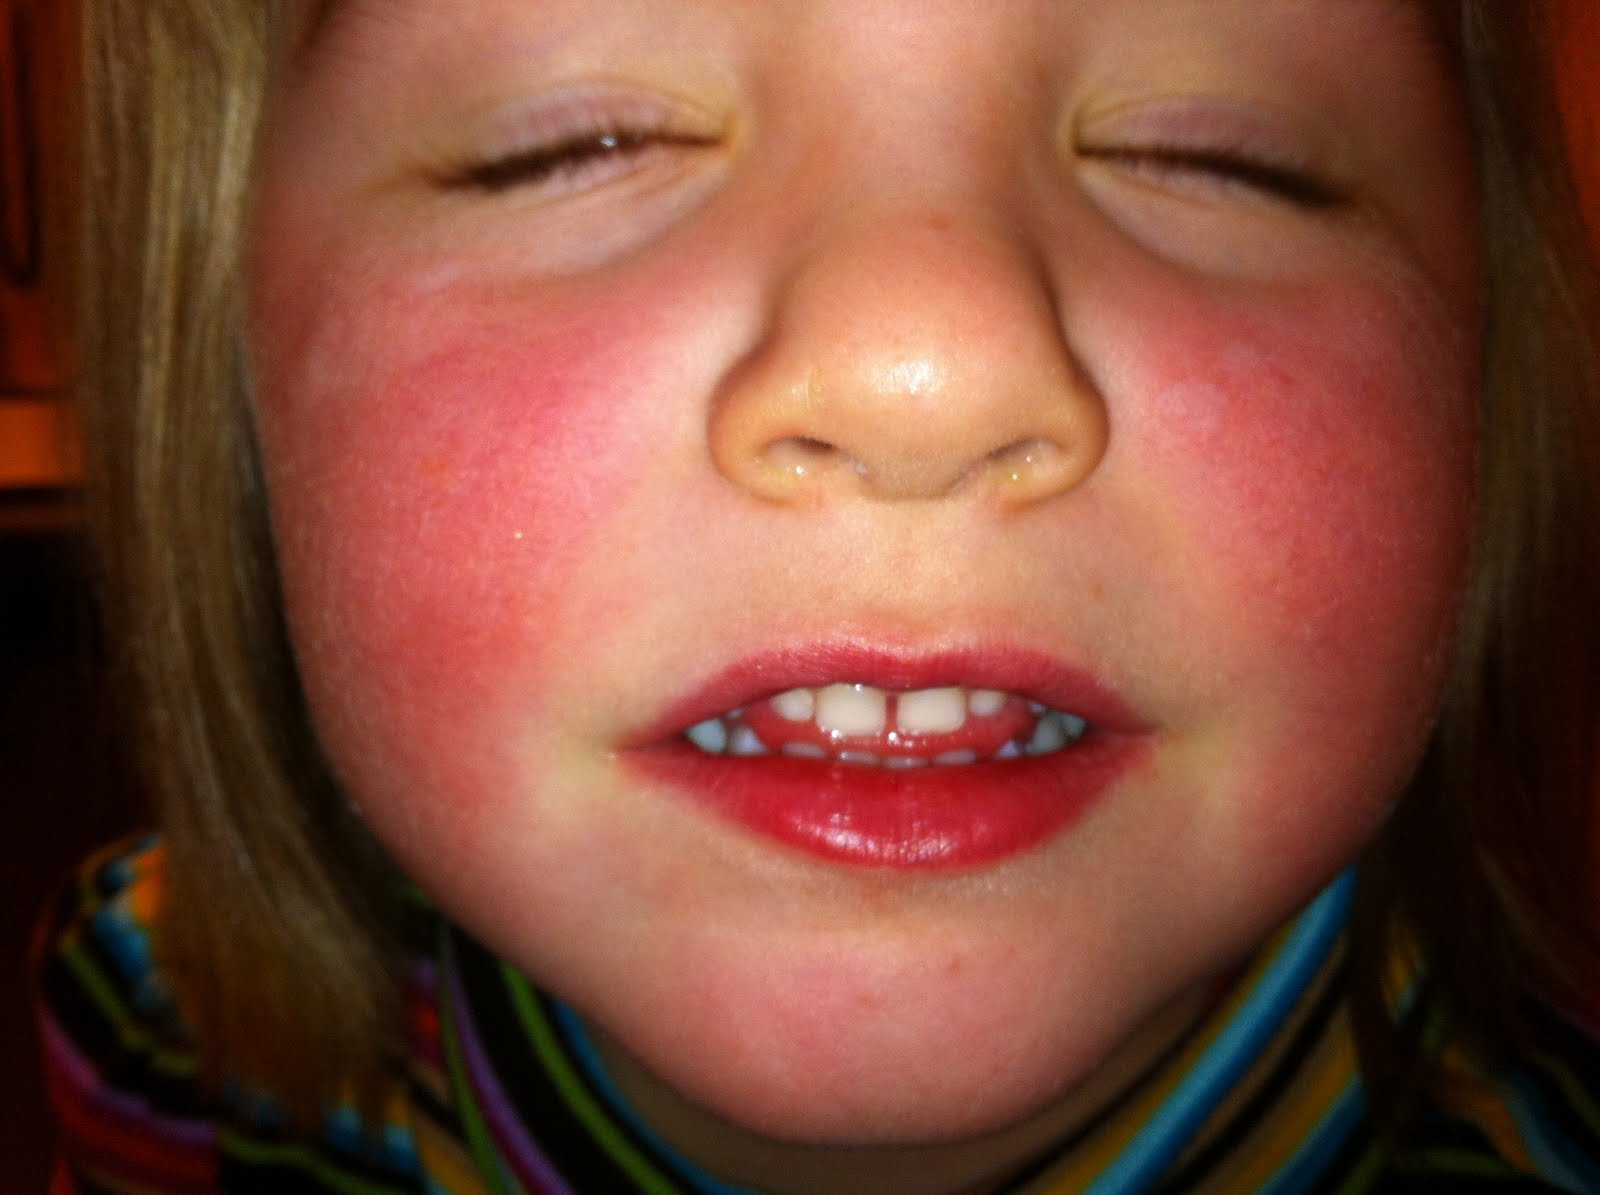 toddler facial rashes